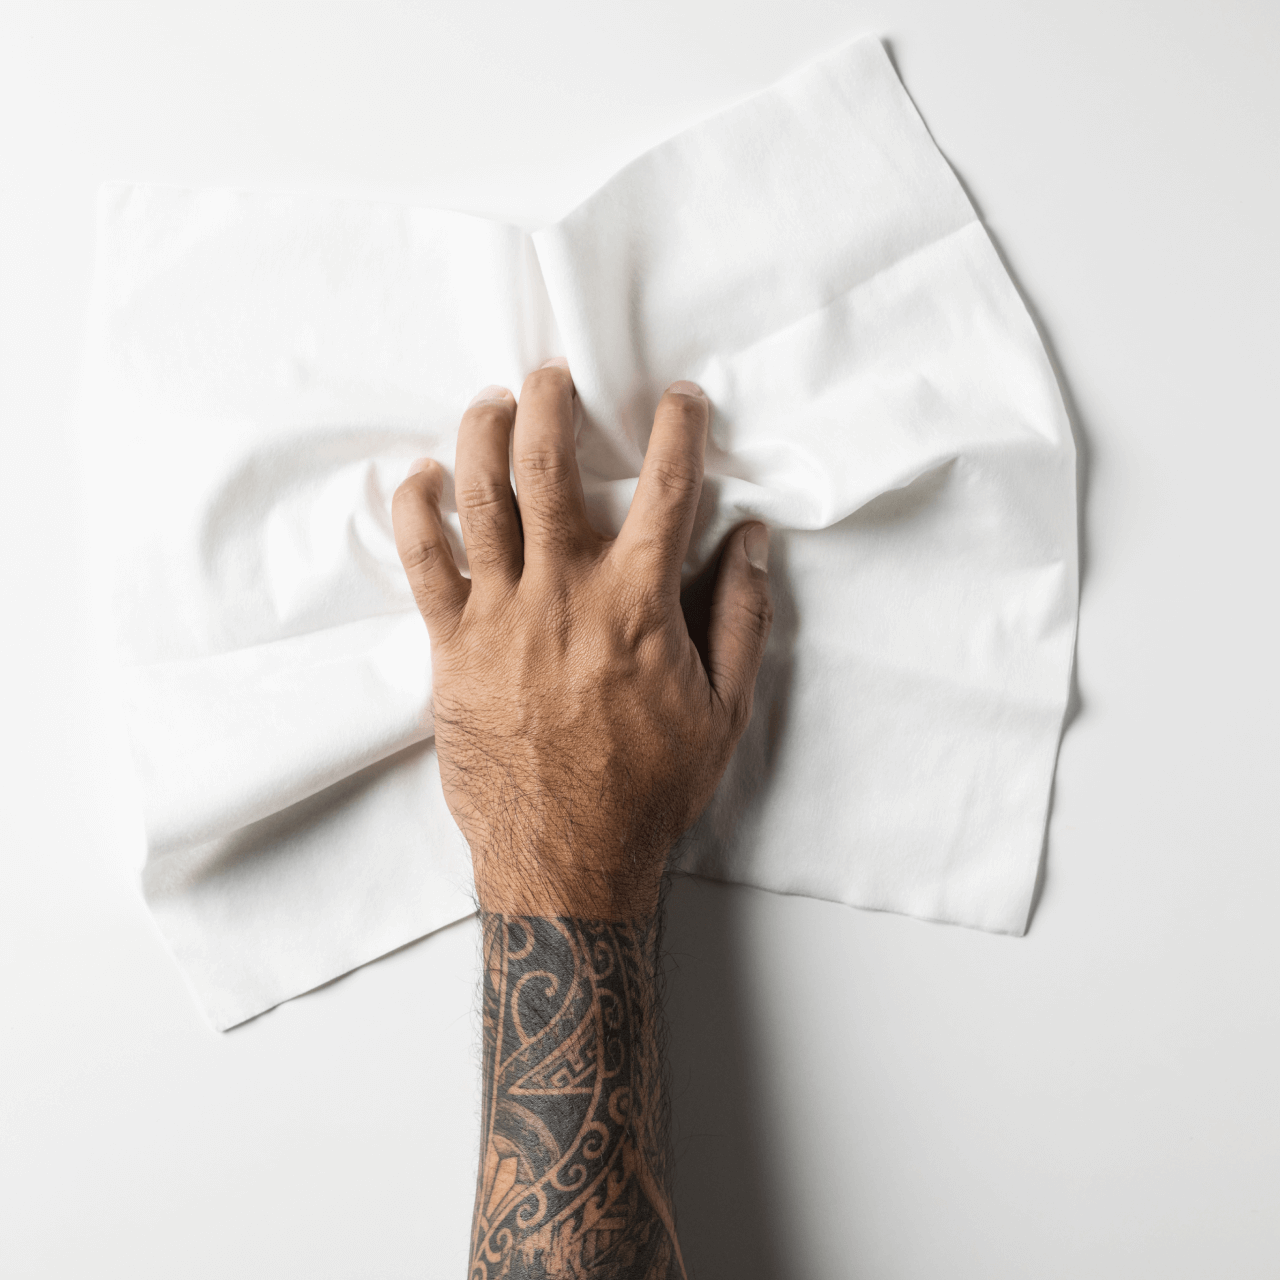 Rag Time: The Easy, Eco-Friendly Alternative to Paper Towels